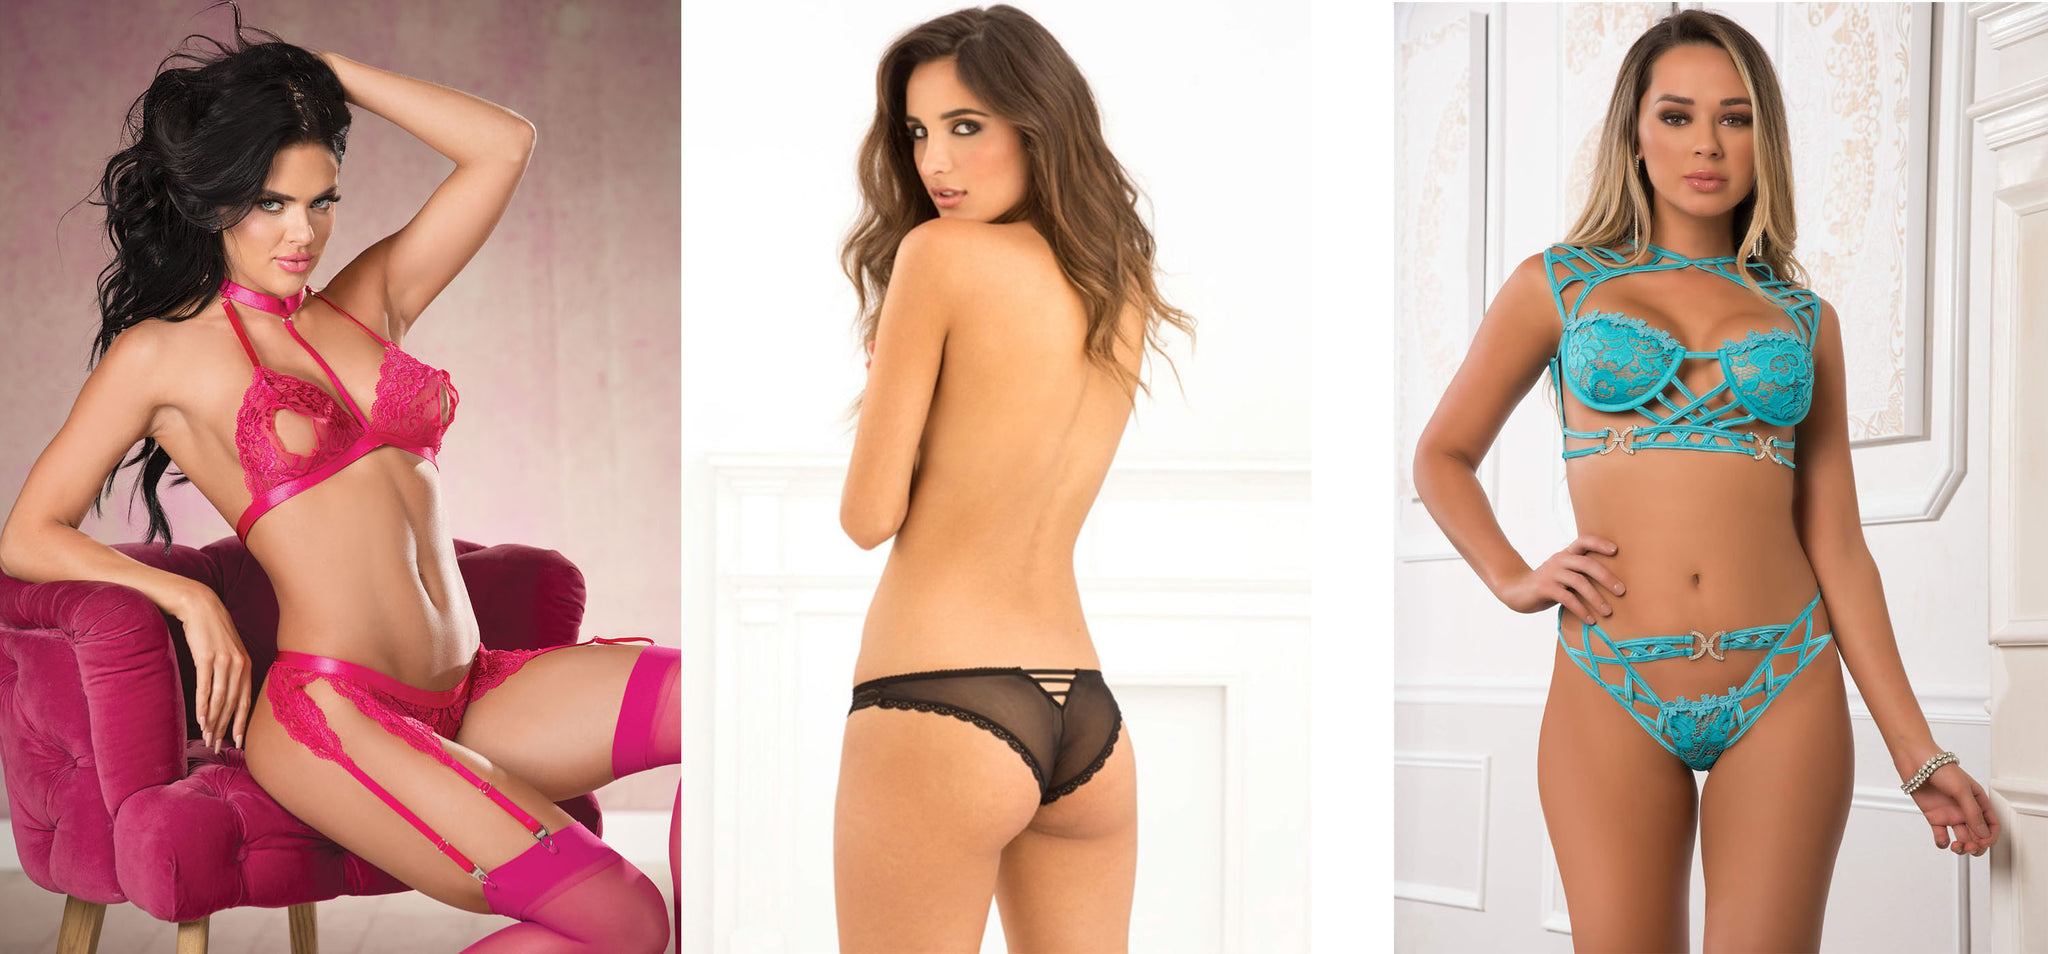 Guide To The Ultimate Women's Underwear